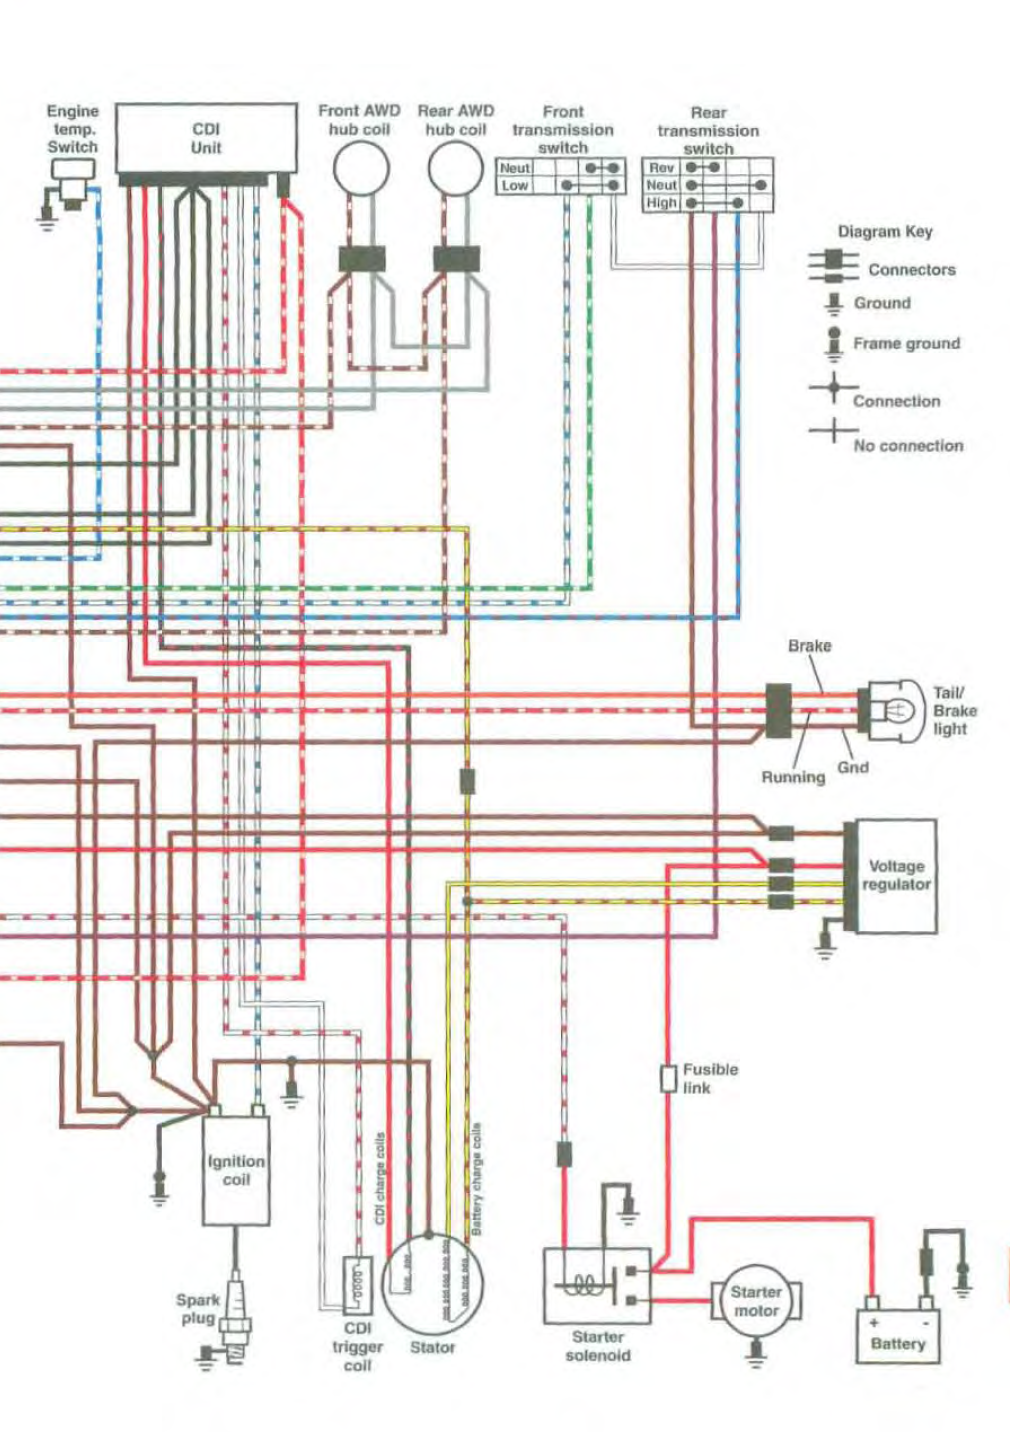 Polaris Ignition Switch Wiring Diagram from www.polarisatvforums.com